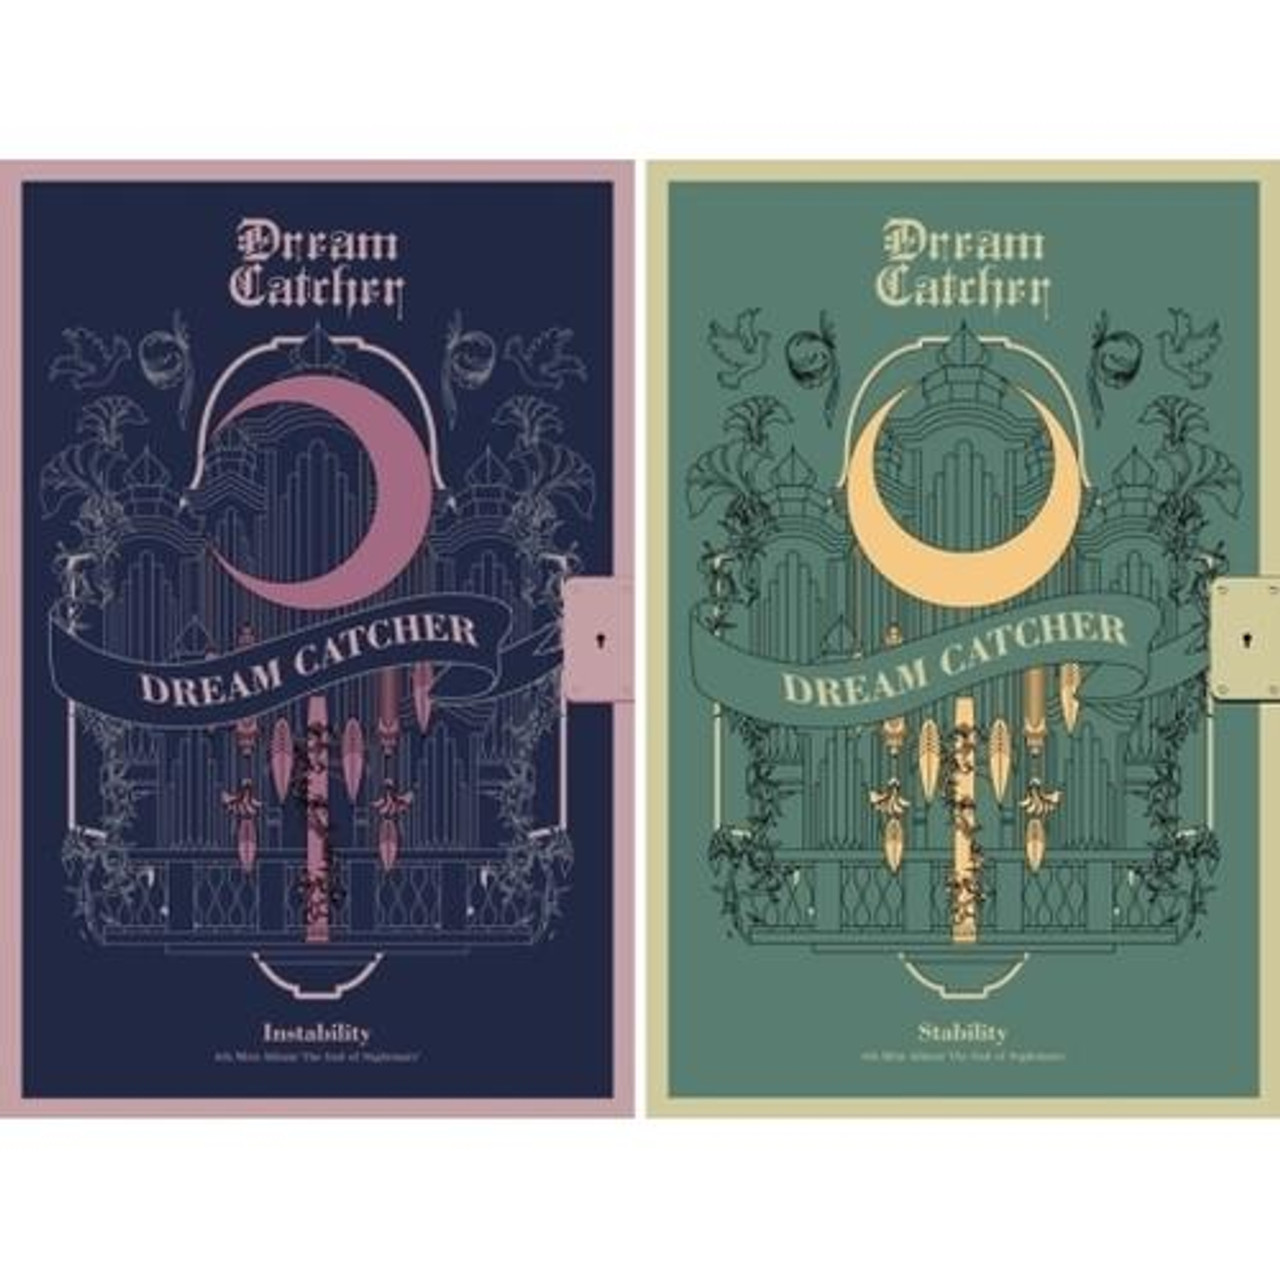 DREAM CATCHER - 4th Mini [The End of Nightmare] (A:Instability Ver / B: Stability Ver.) + Poster